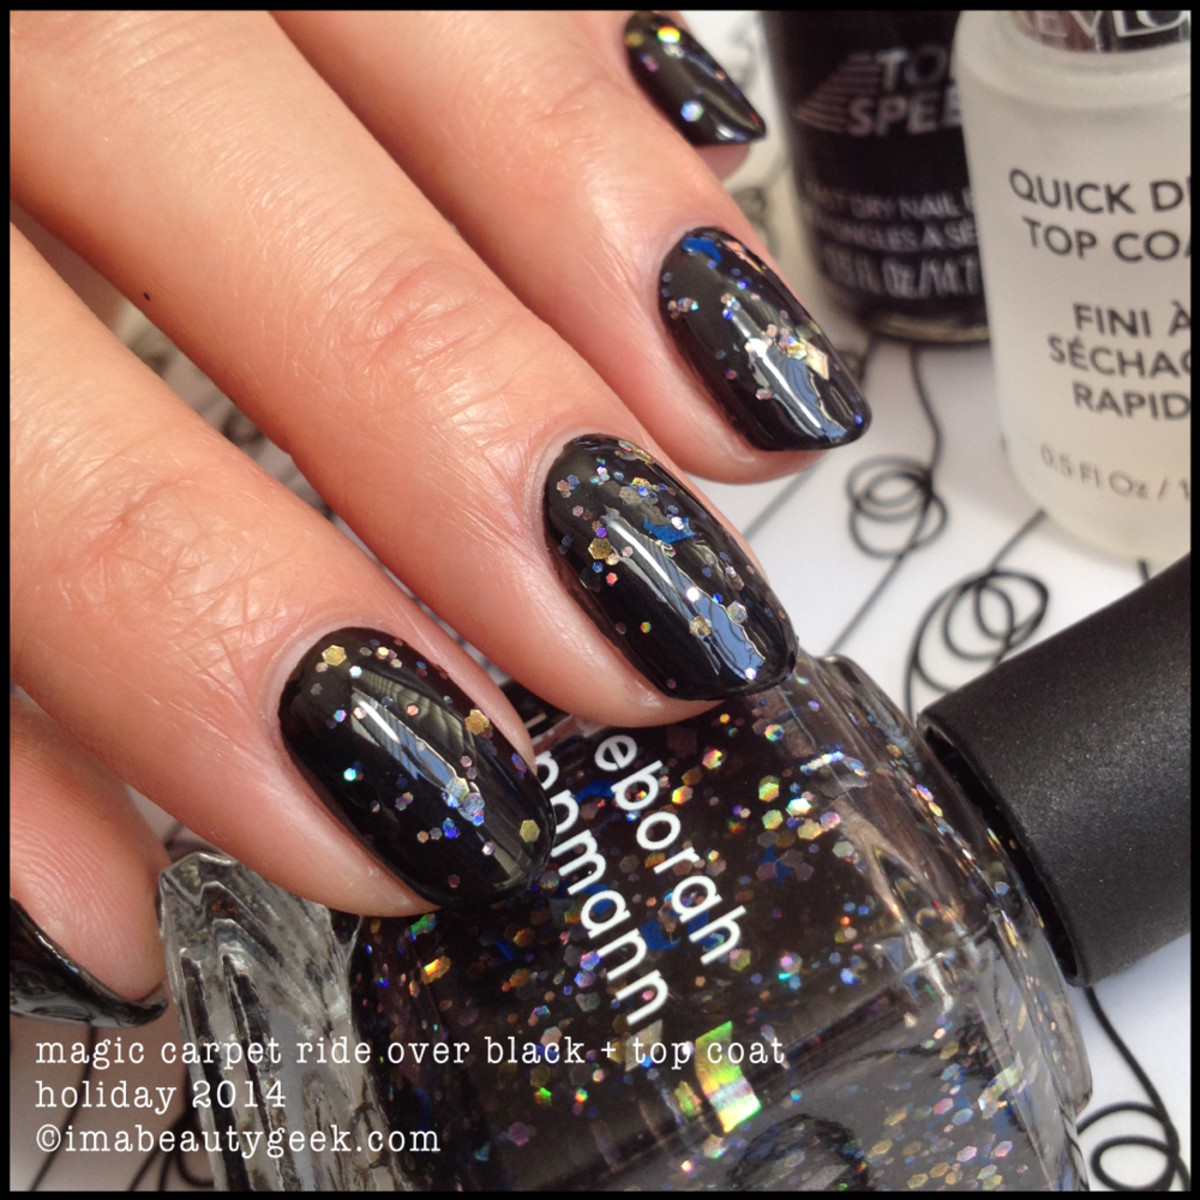 Deborah Lippmann Holiday 2014 Magic Carpet Ride over Black w Topcoat